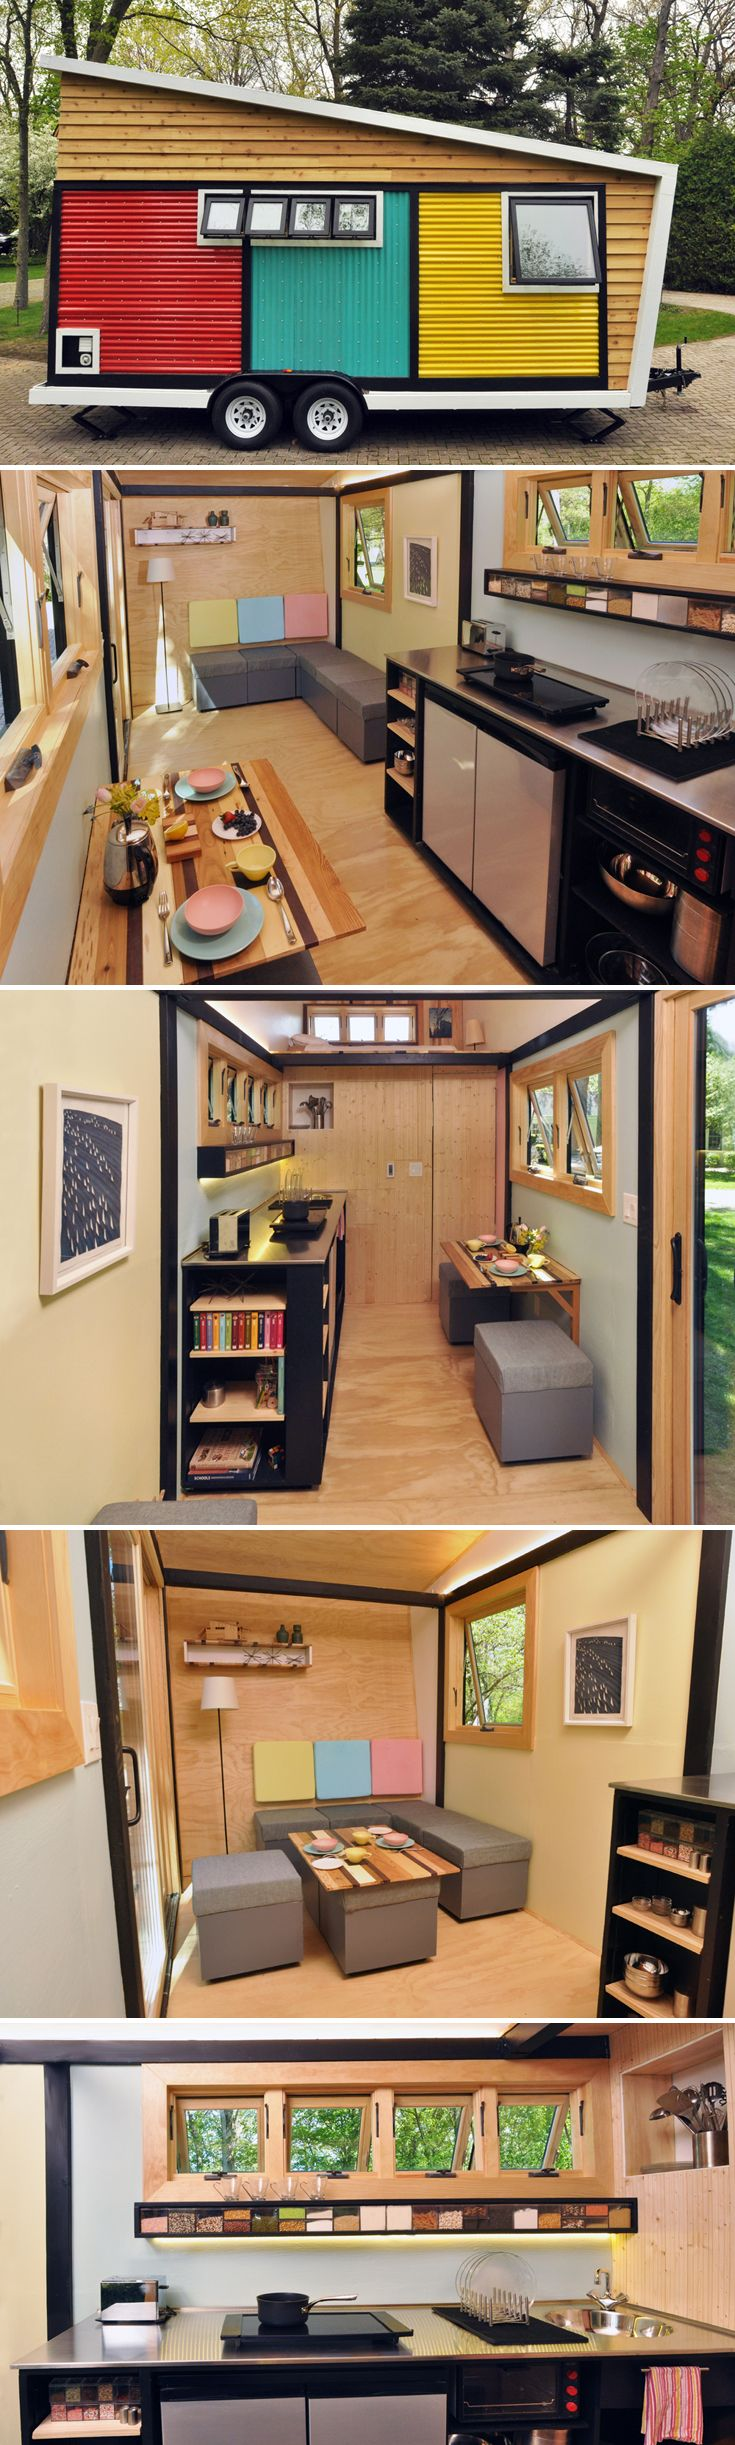 The Toy Box Tiny Home is a whimsical, colorful tiny house that combines modern design with ecologically responsible materials.